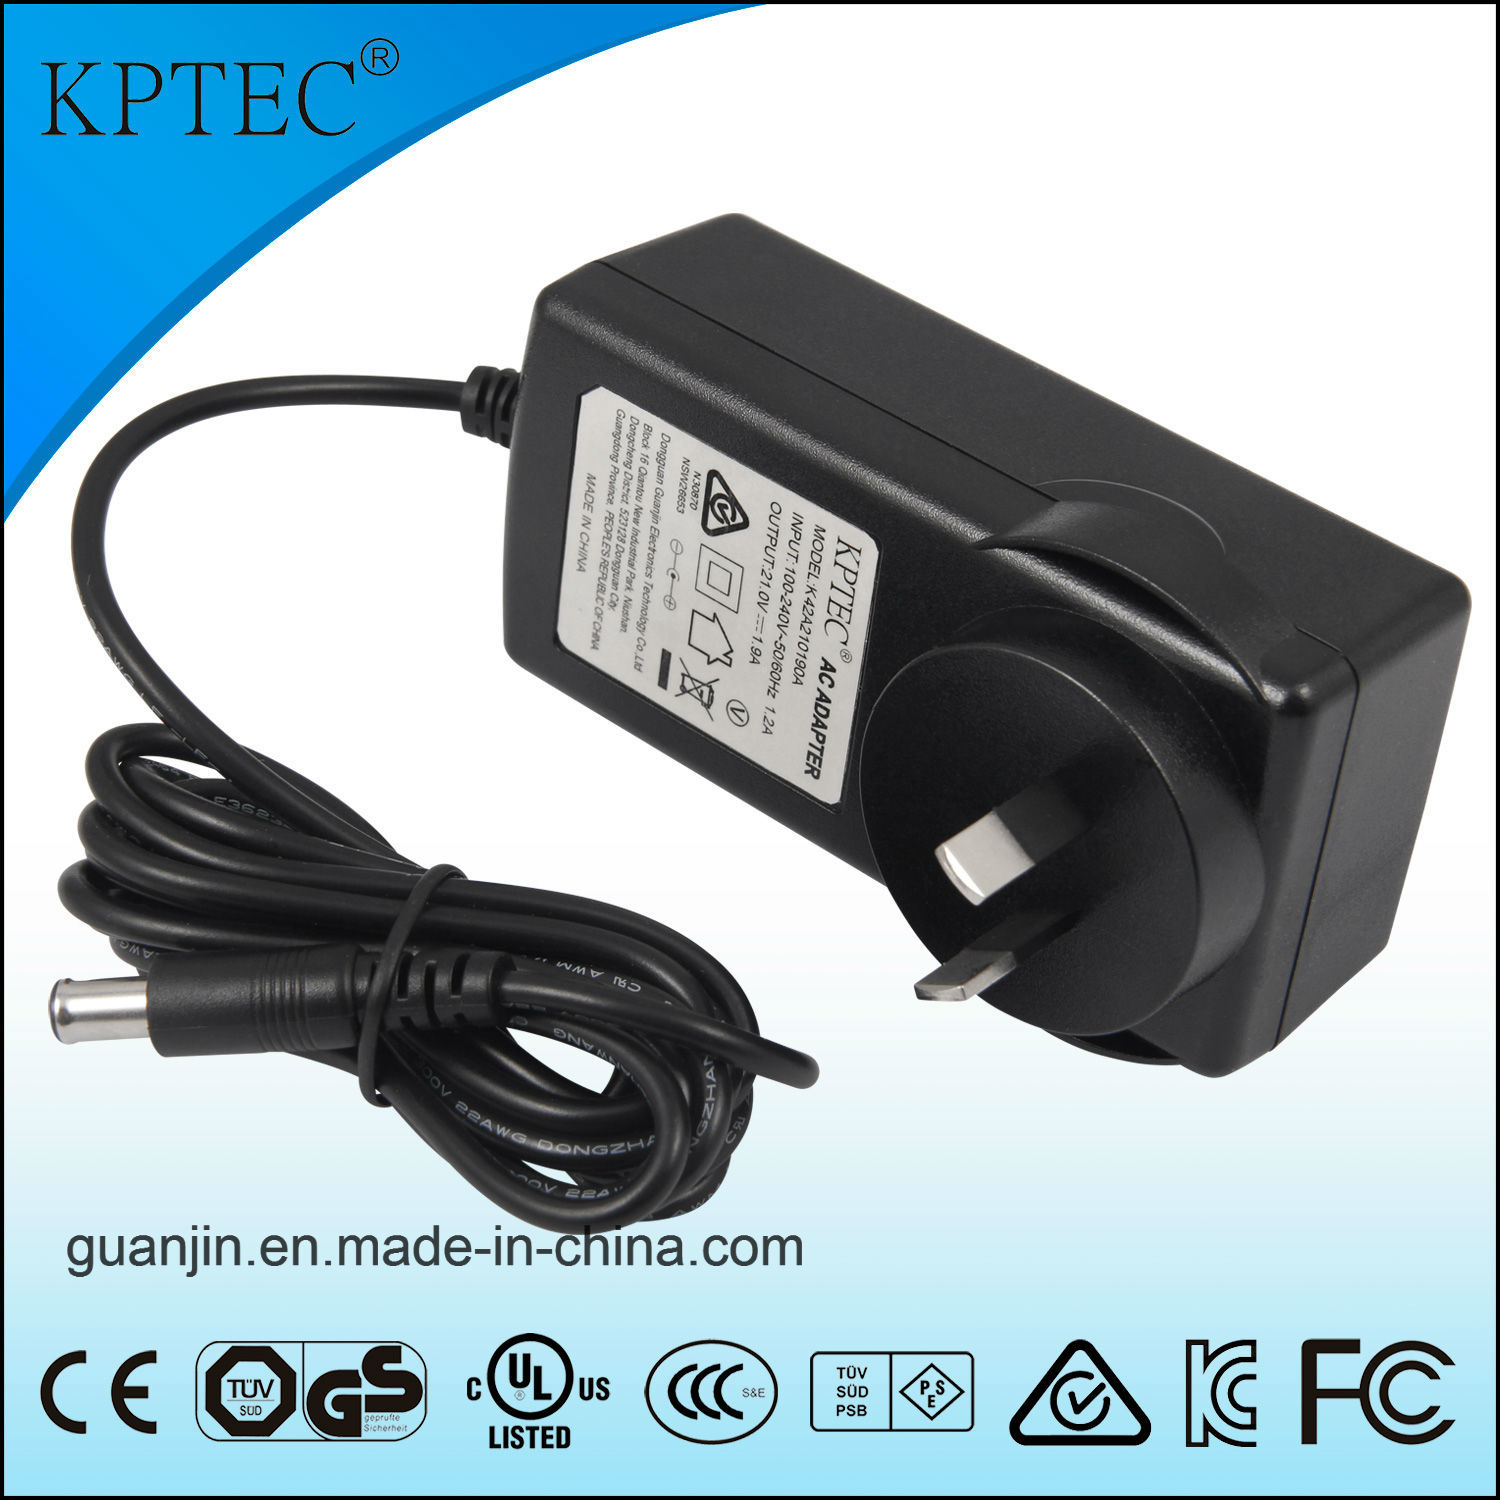 12V 3A Australia Plug Charger with SAA C-Tick Certificate